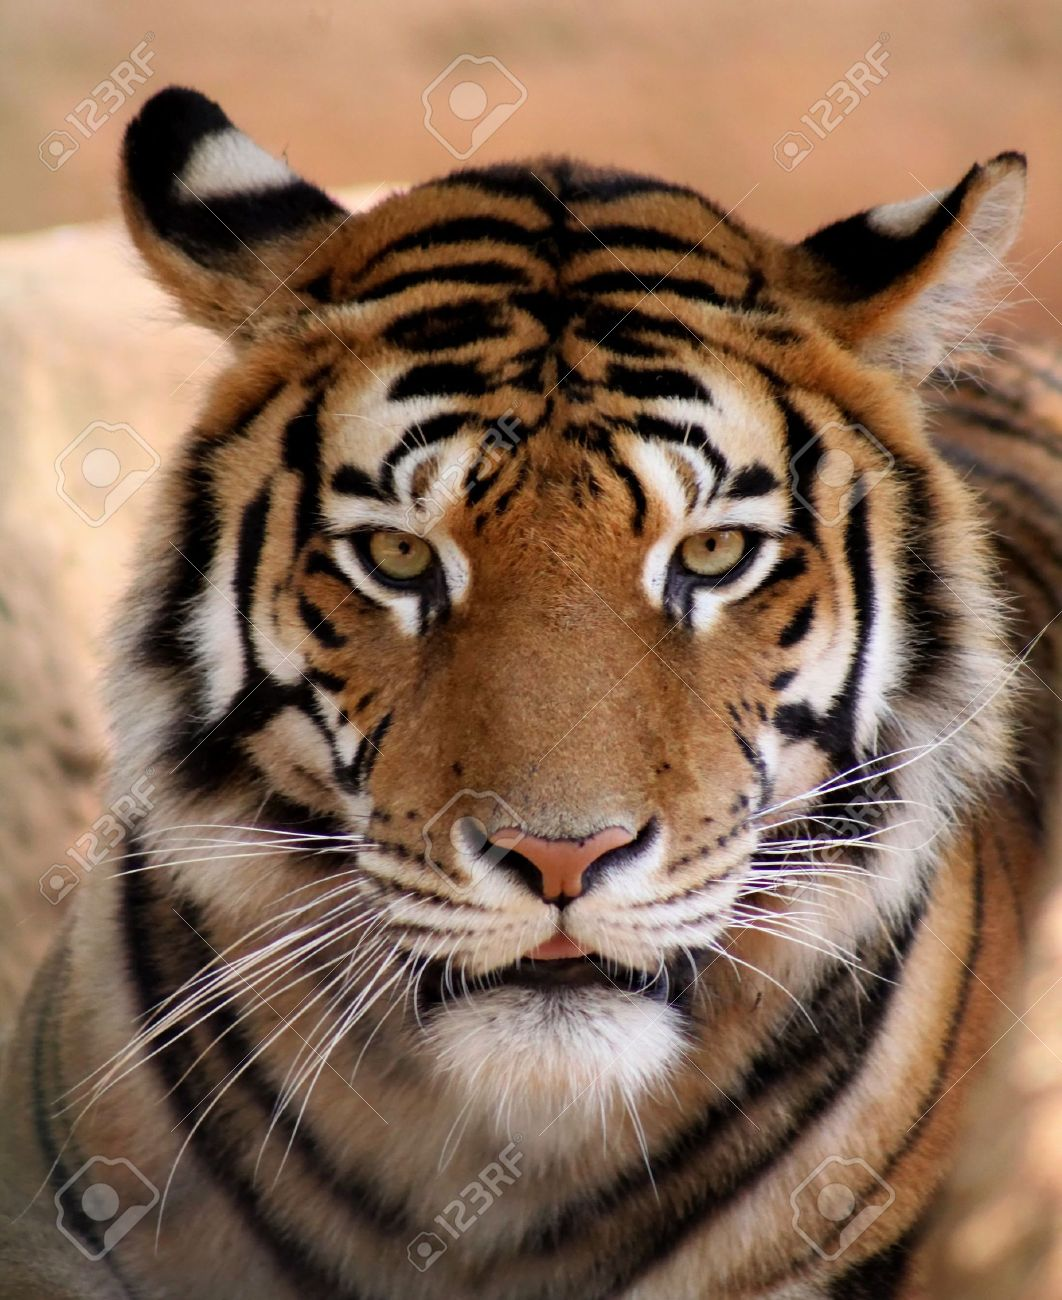 close up picture tigers face with slightly open mouth stock photo